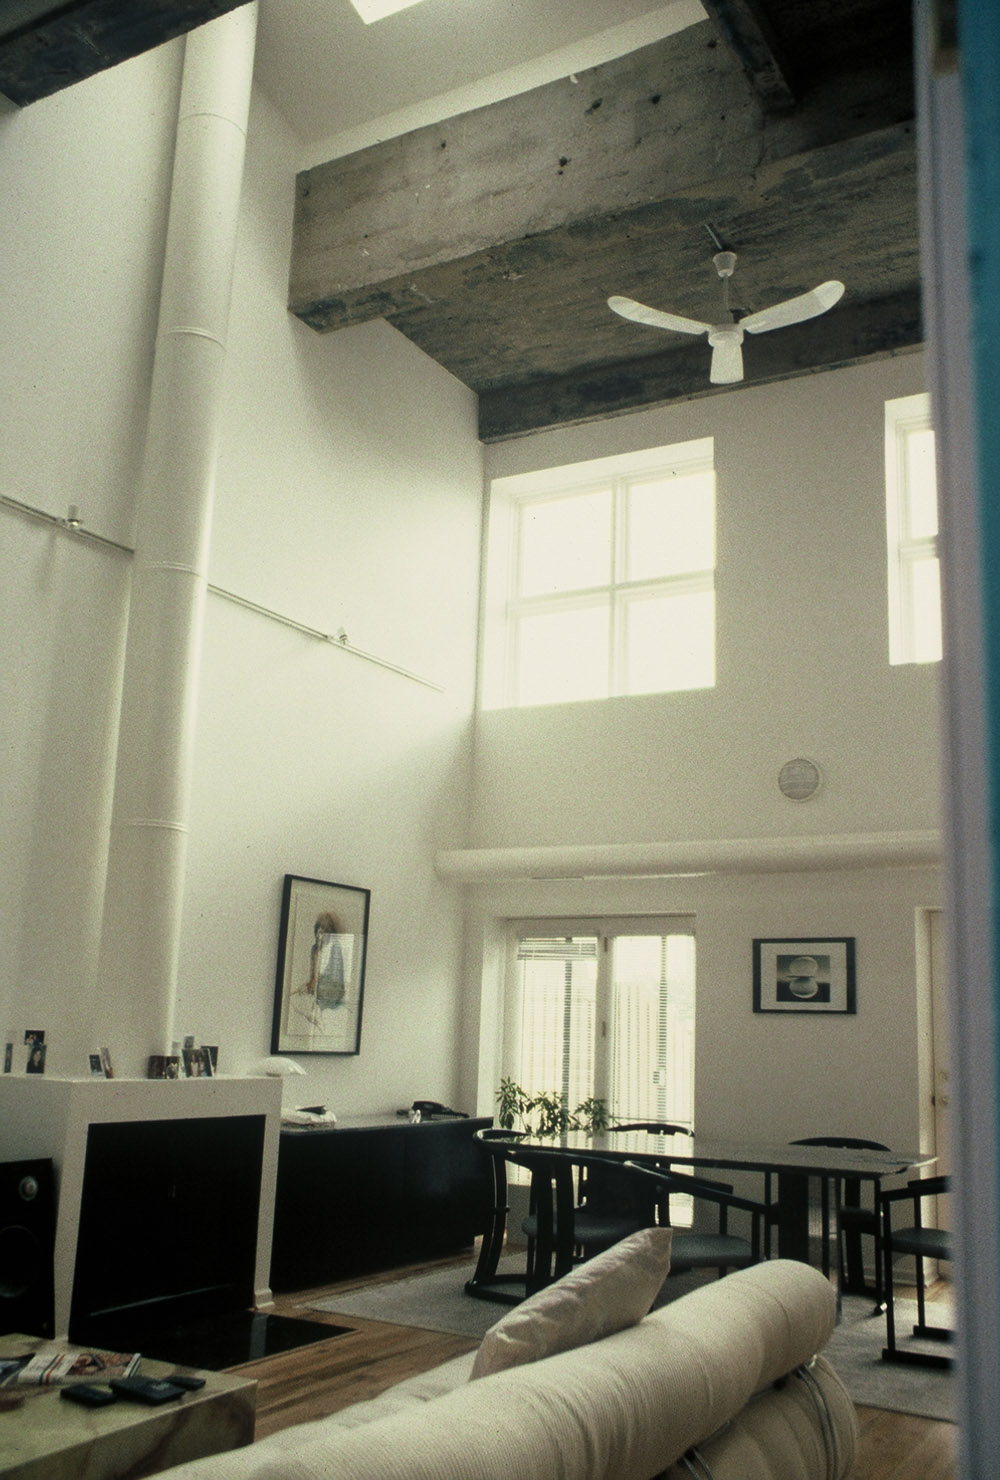 Boiler House Lofts, interior of dwelling unit